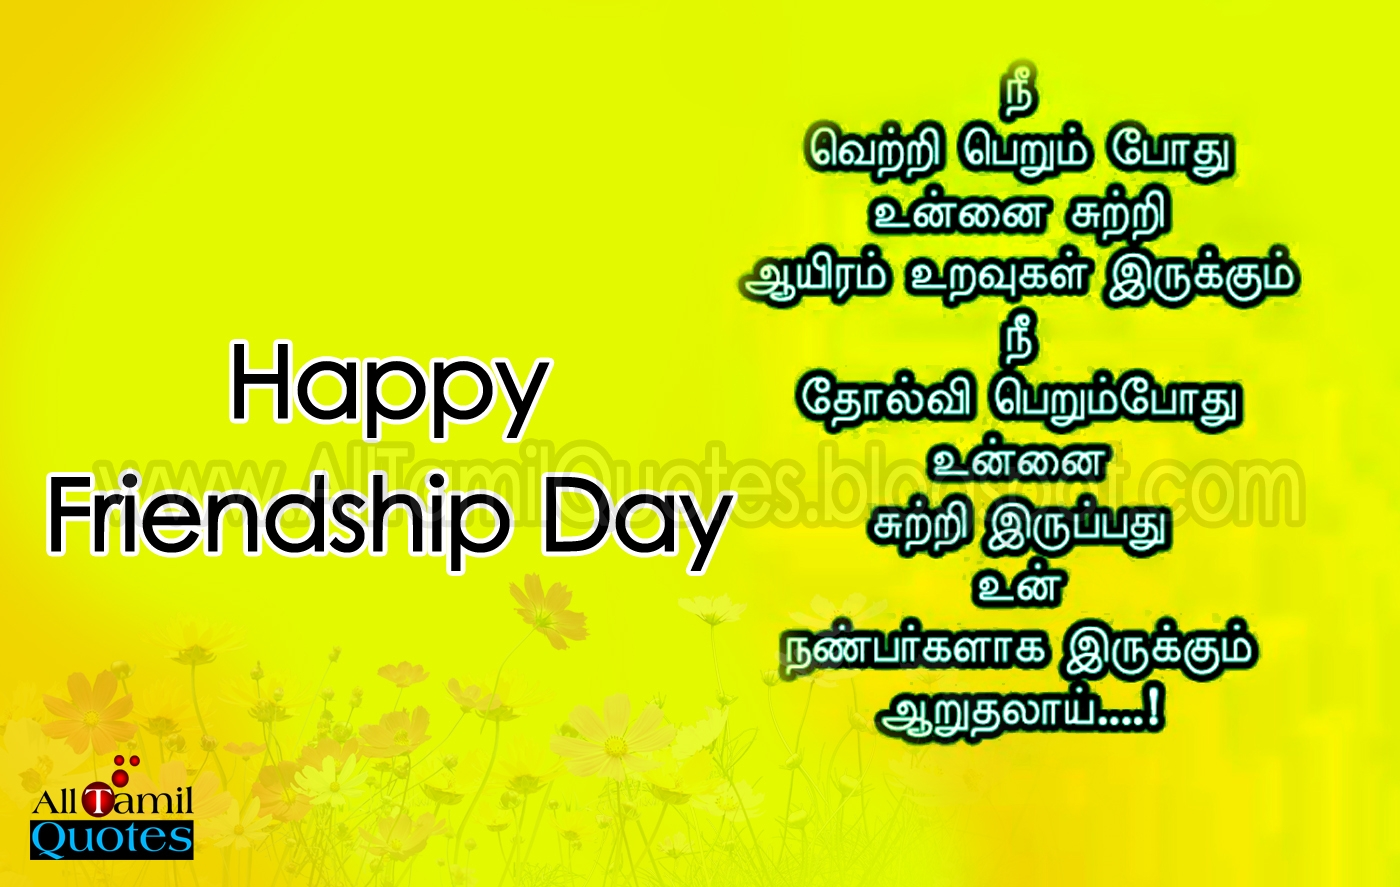 Friendship day image with quote in tamil